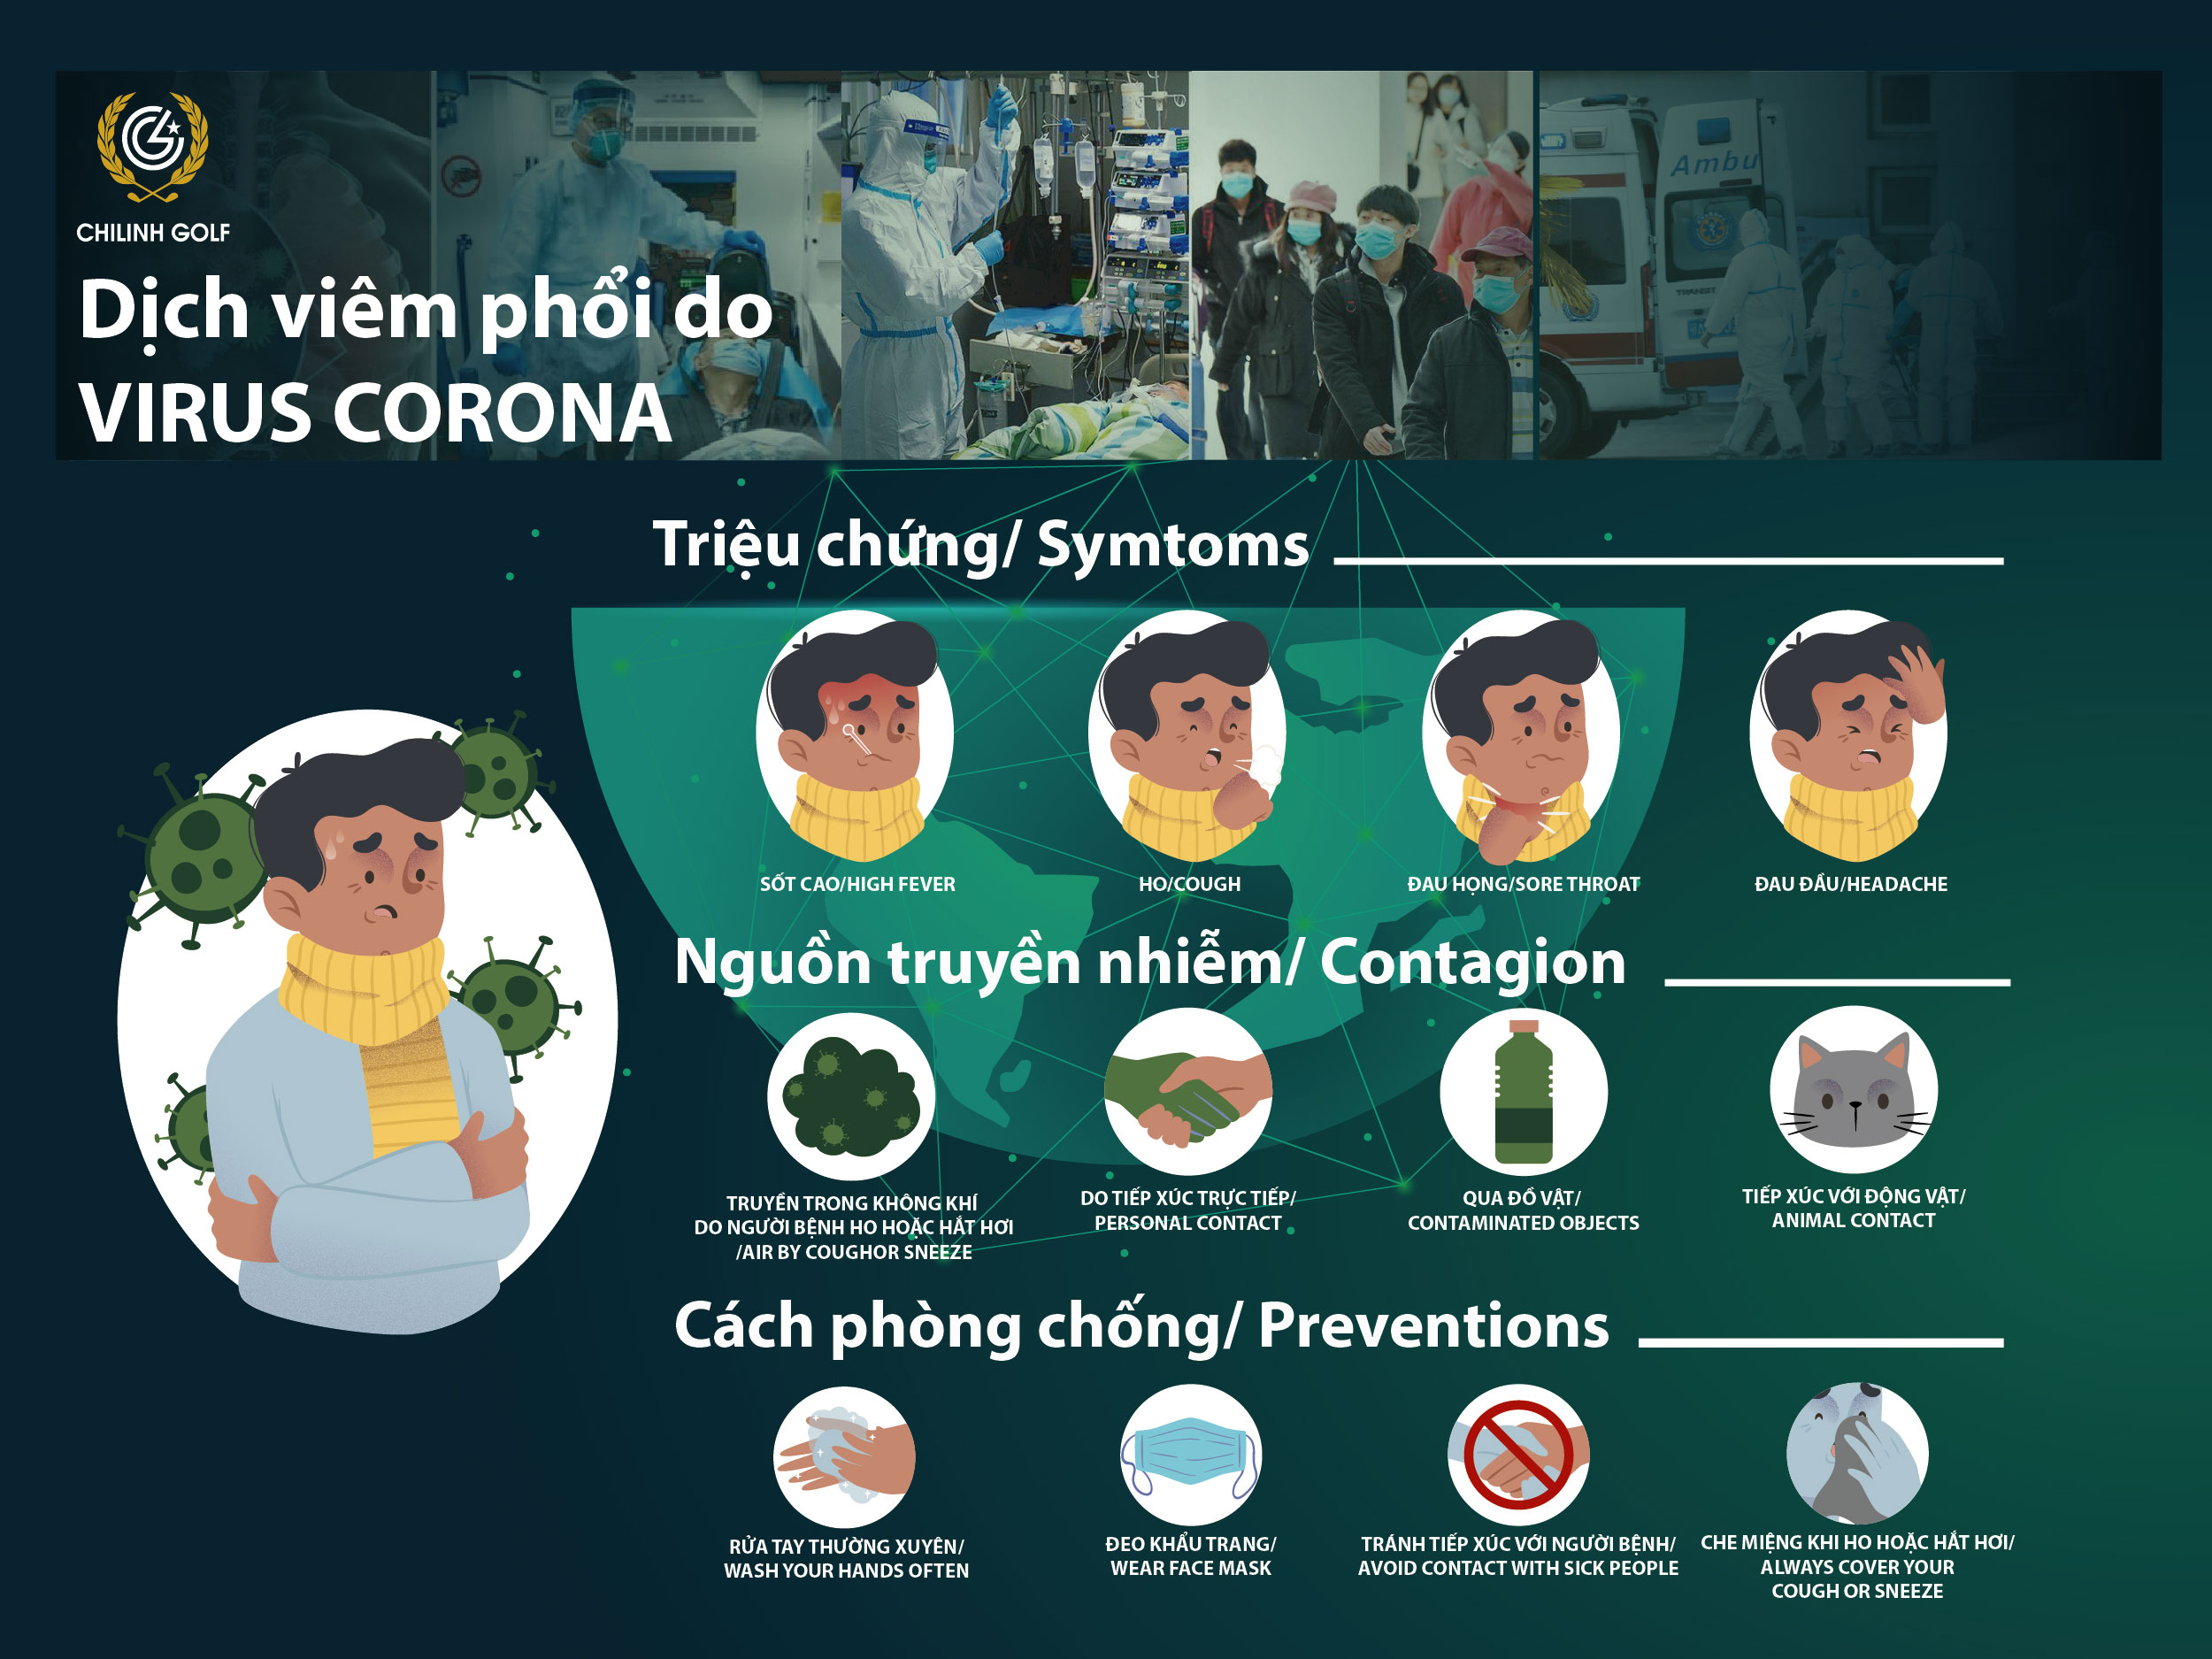 THÔNG BÁO: NHẬN BOOKING TRONG MÙA DỊCH VIRUS CORONA/ ANNOUCEMENT: BOOKING POLICY DURING COVID-19 PERIOD